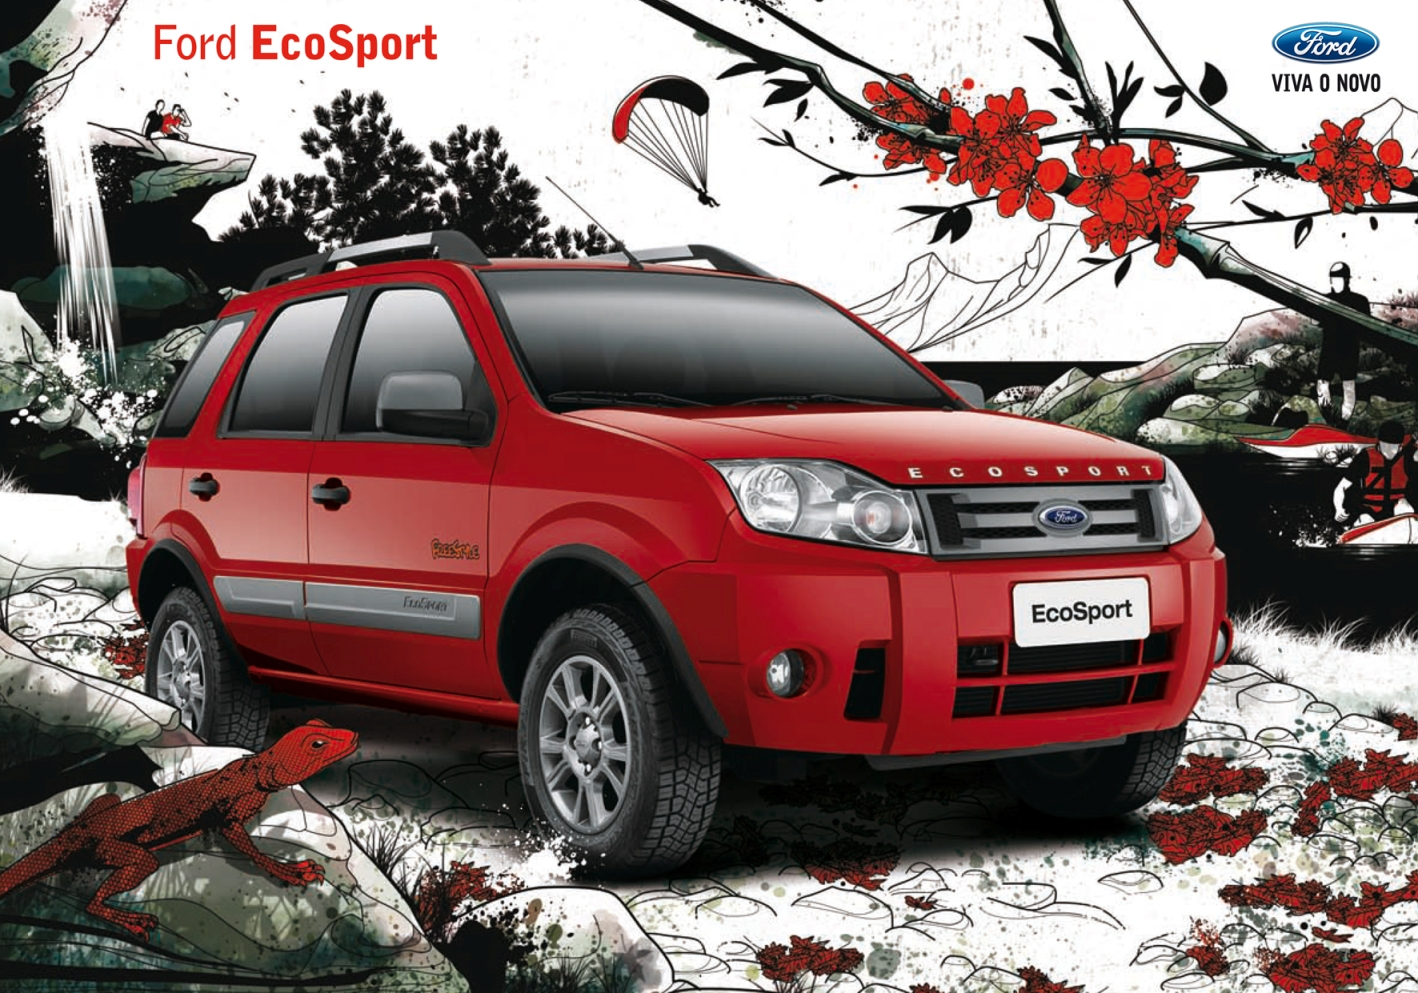 FORD EcoSport specs & photos - 2004, 2005, 2006, 2007, 2008, 2009, 2010, 2011, 2012 - autoevolution